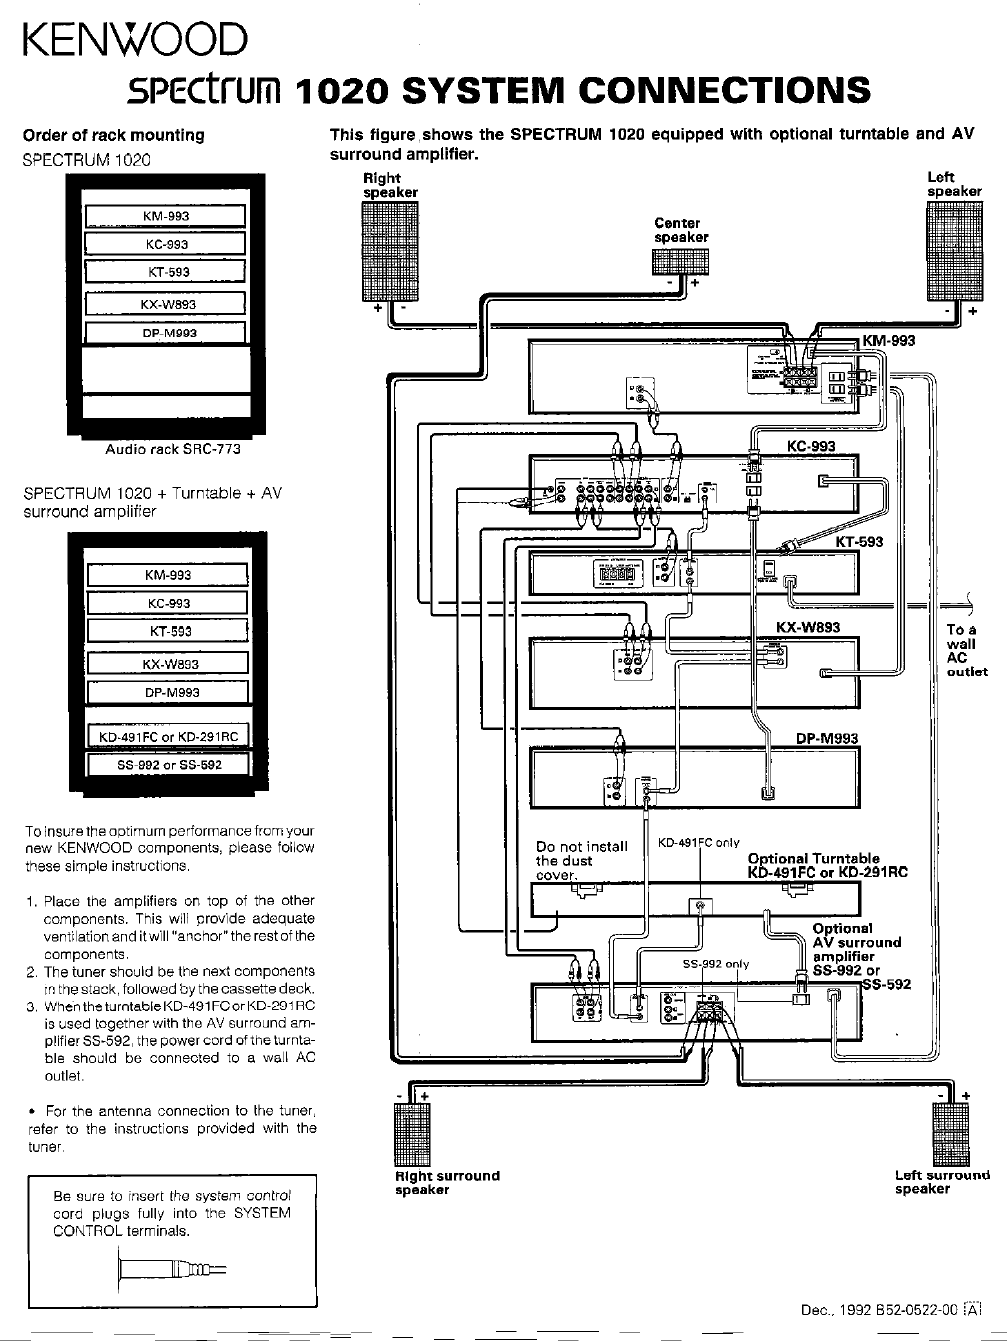 Dpm993 furthermore Techunick furthermore Siemens Car Player Wiring Diagram in addition Cadillac Seville Stereo Wiring Diagram as well Sc400 Wiring Harness. on kenwood home stereo wiring diagram